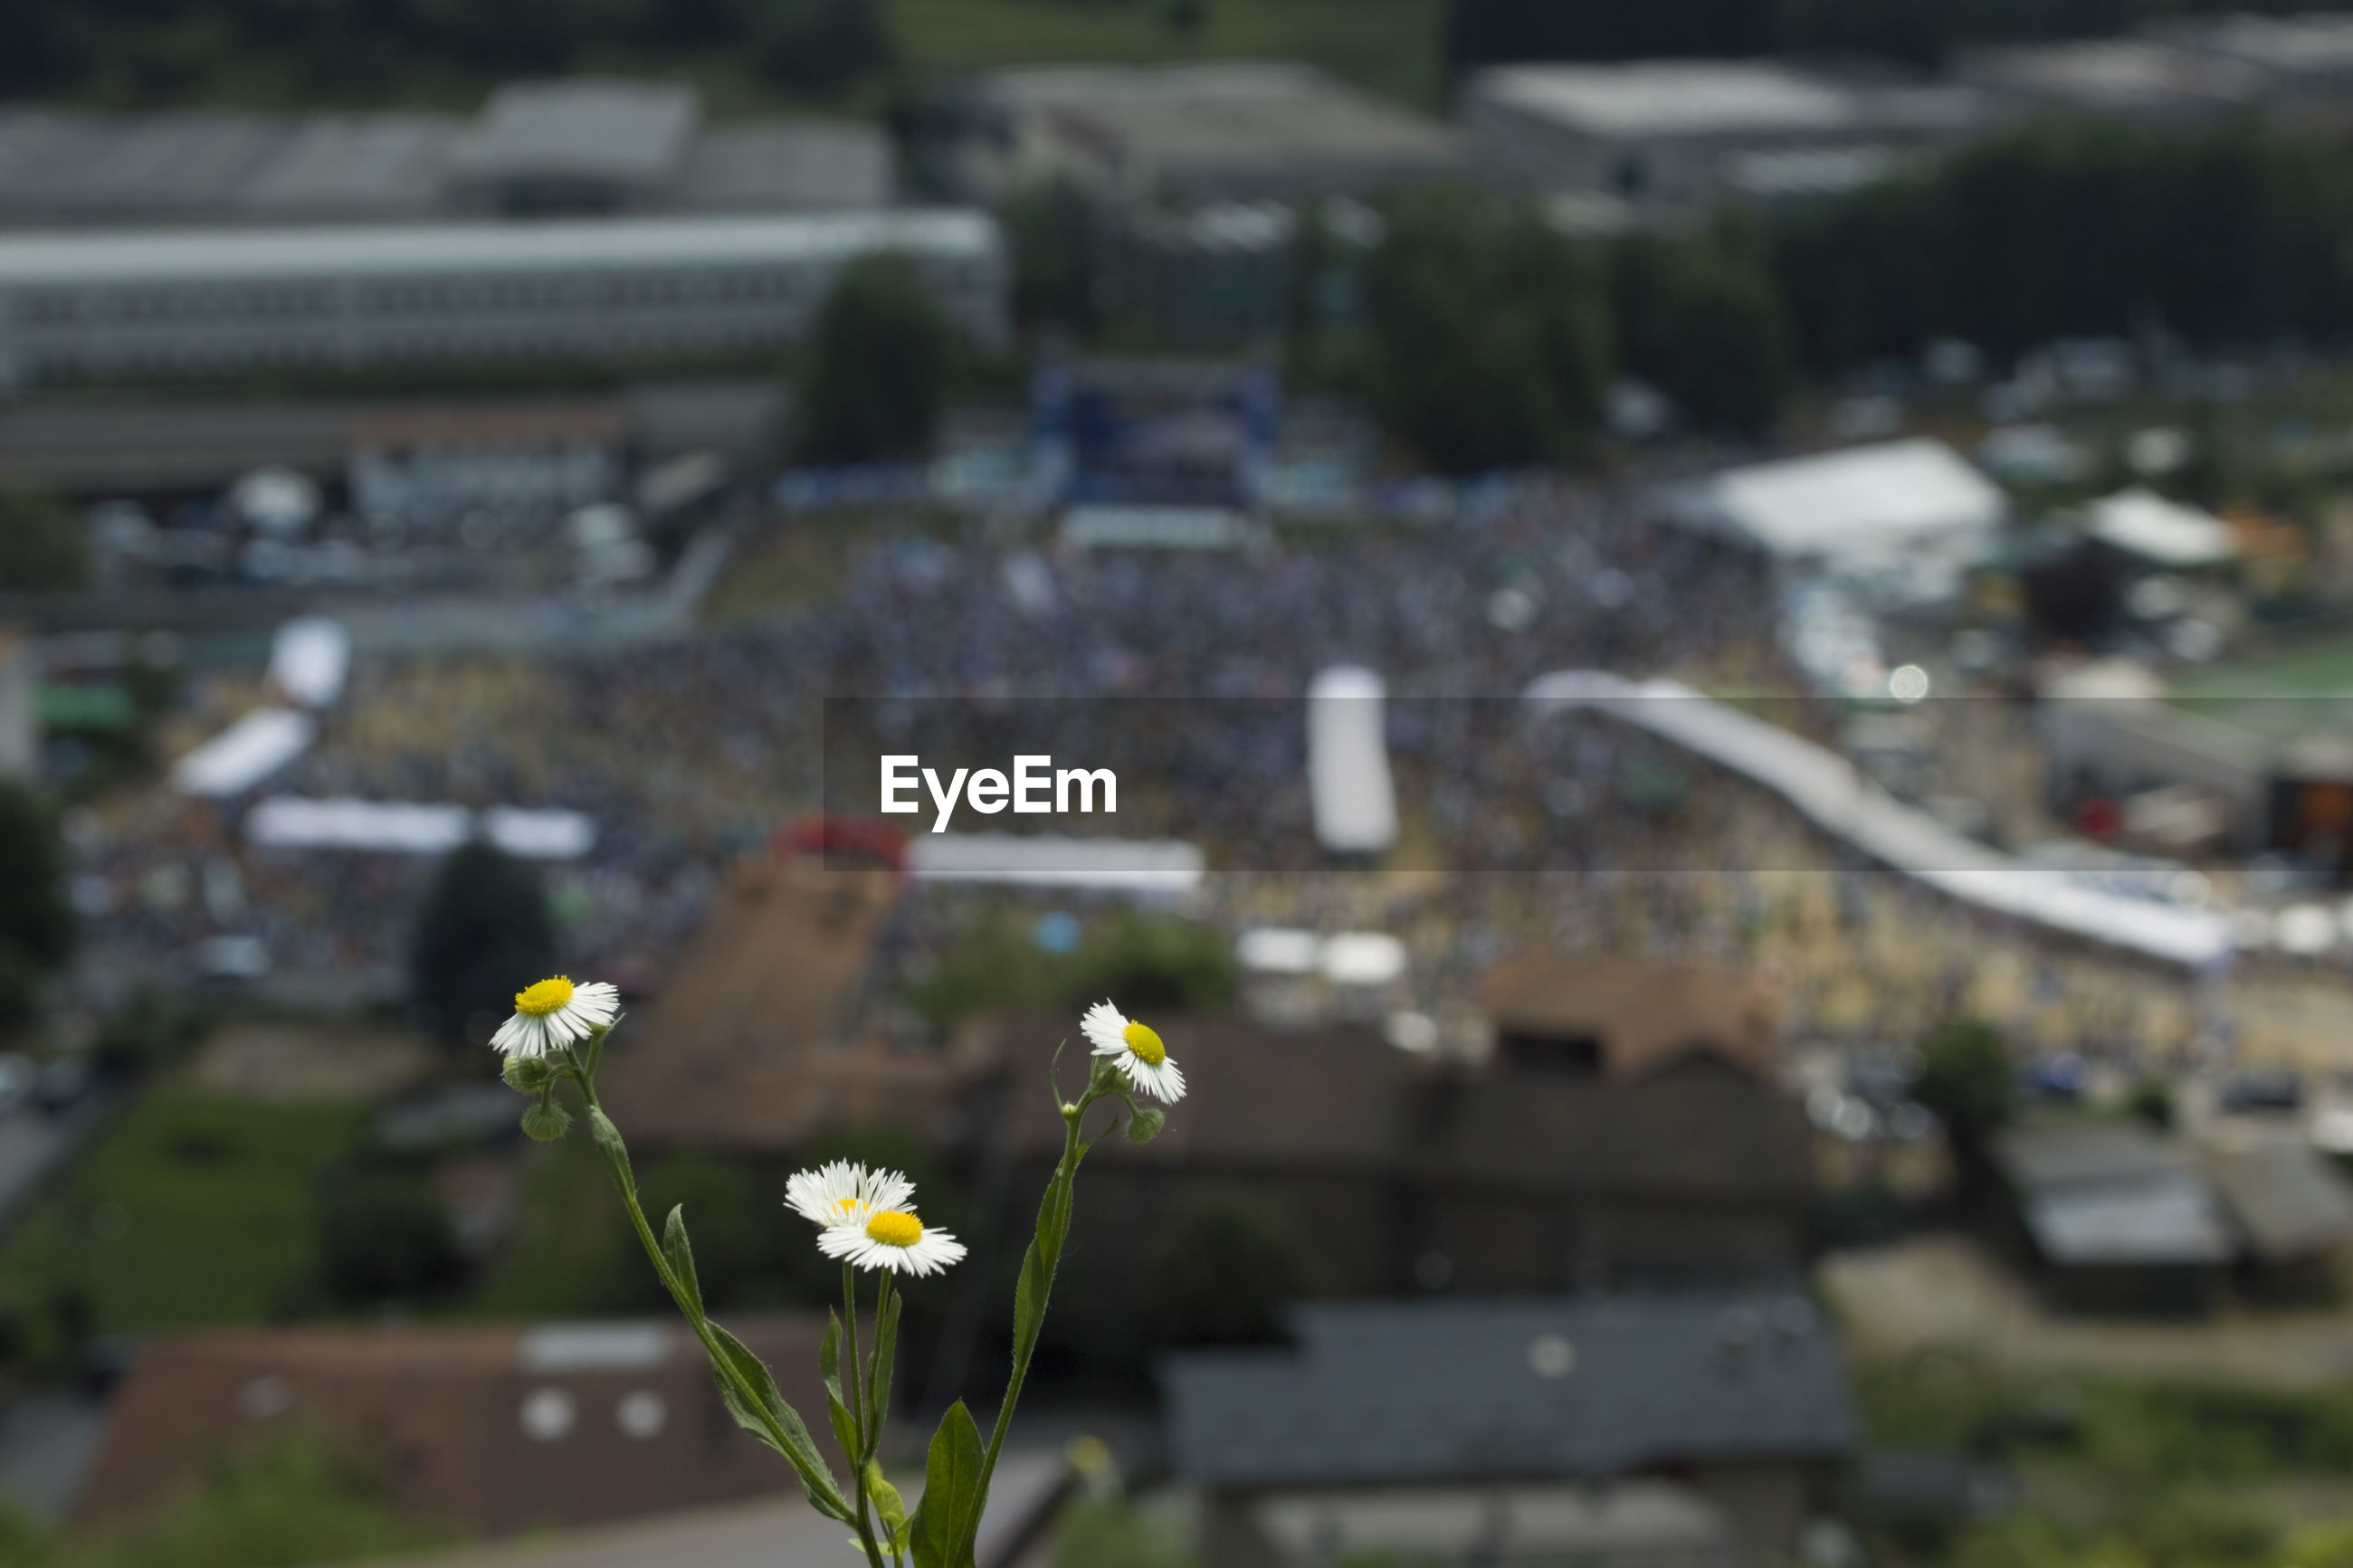 HIGH ANGLE VIEW OF FLOWERING PLANT AGAINST CITY